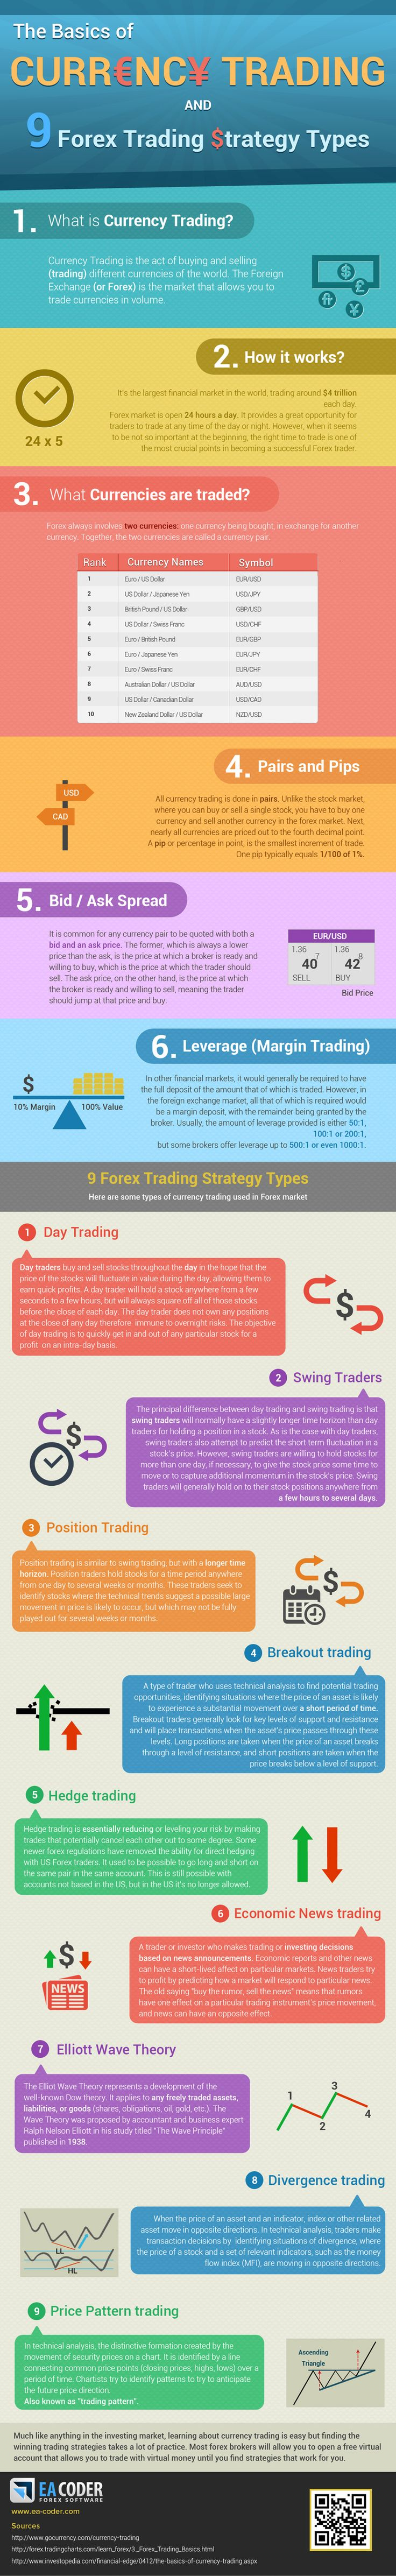 Infographic currency trading basics an 9 forex strategy types #forex #currency #money